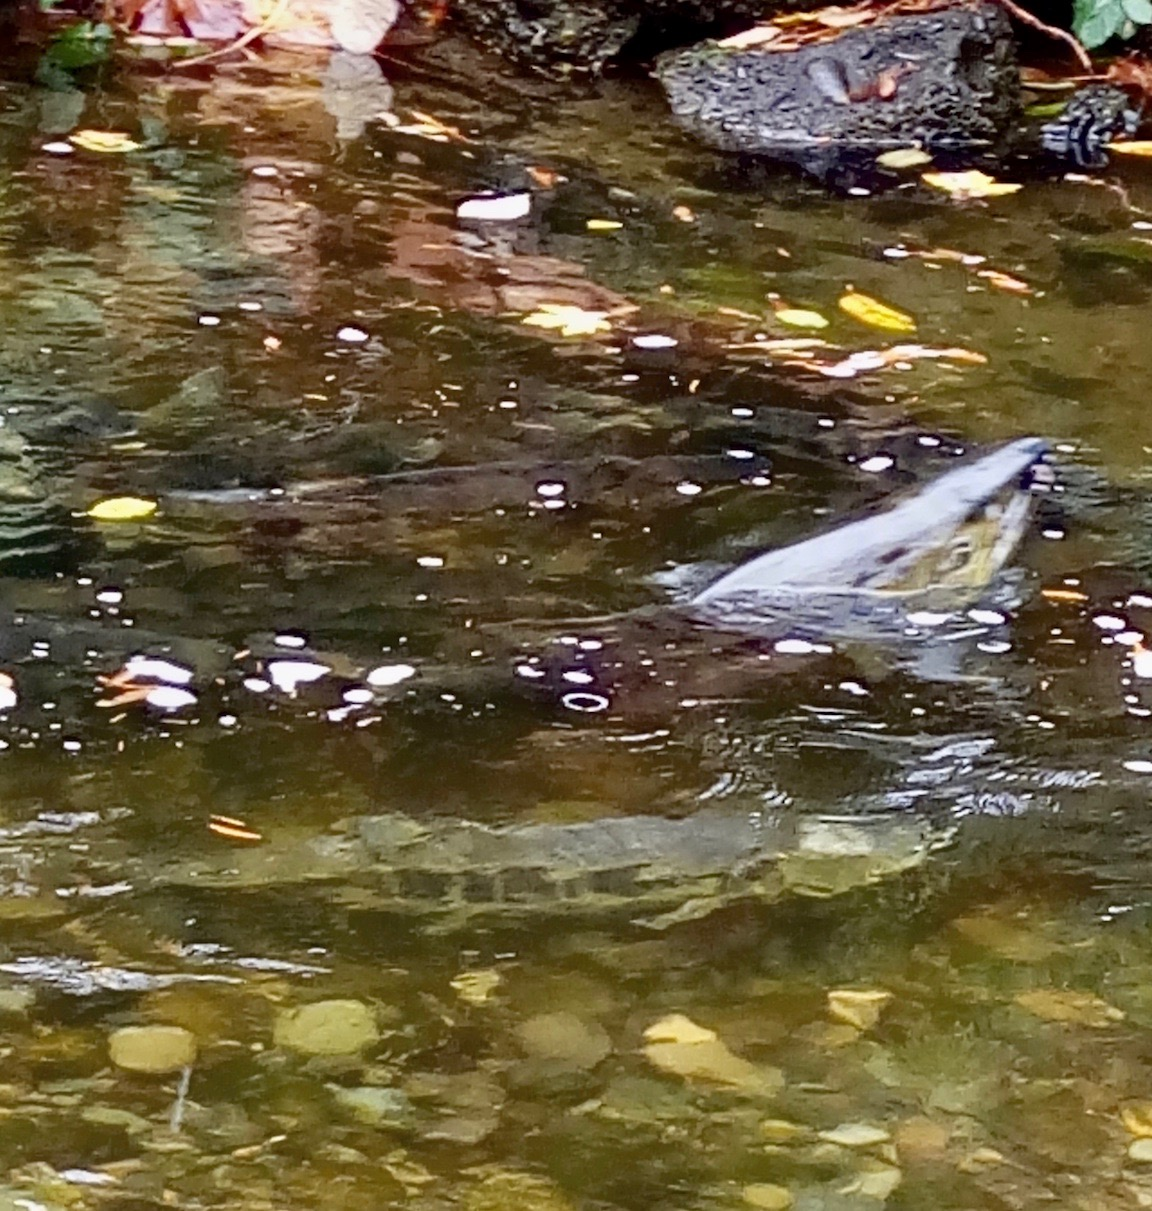 Chum salmon | Watching Our Water Ways